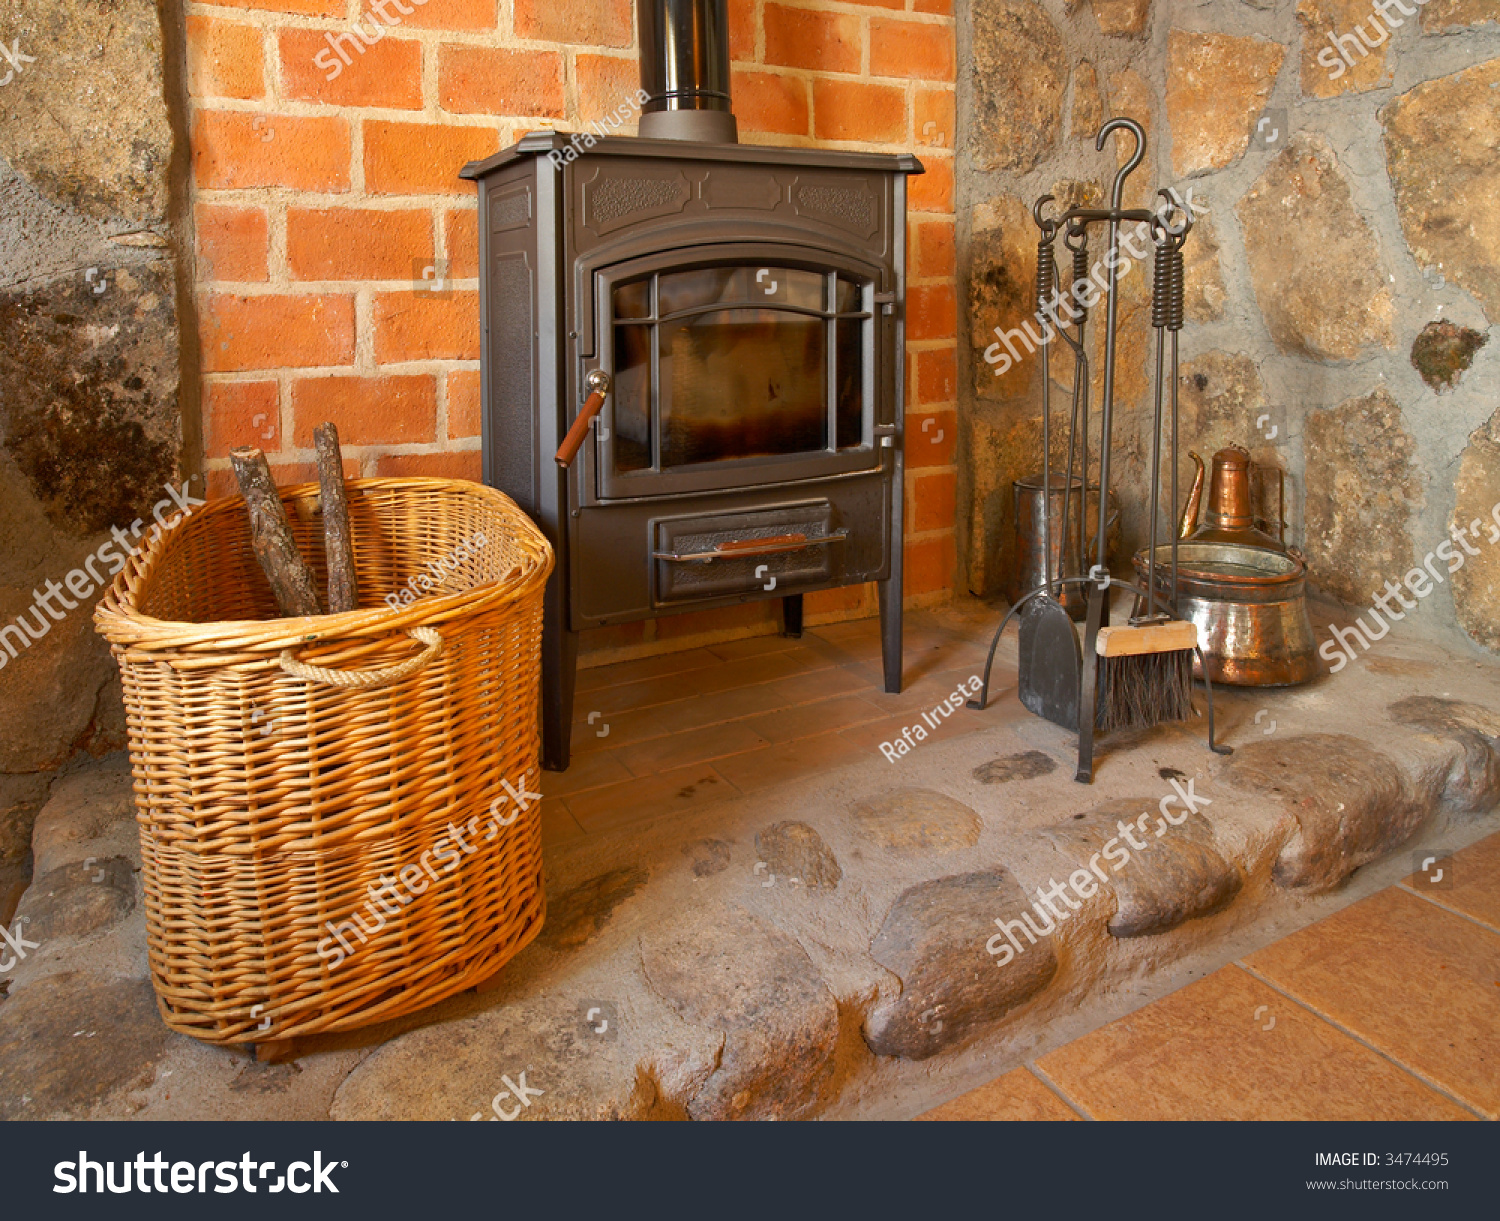 View Of A Cozy Old Fireplace In The Living Room